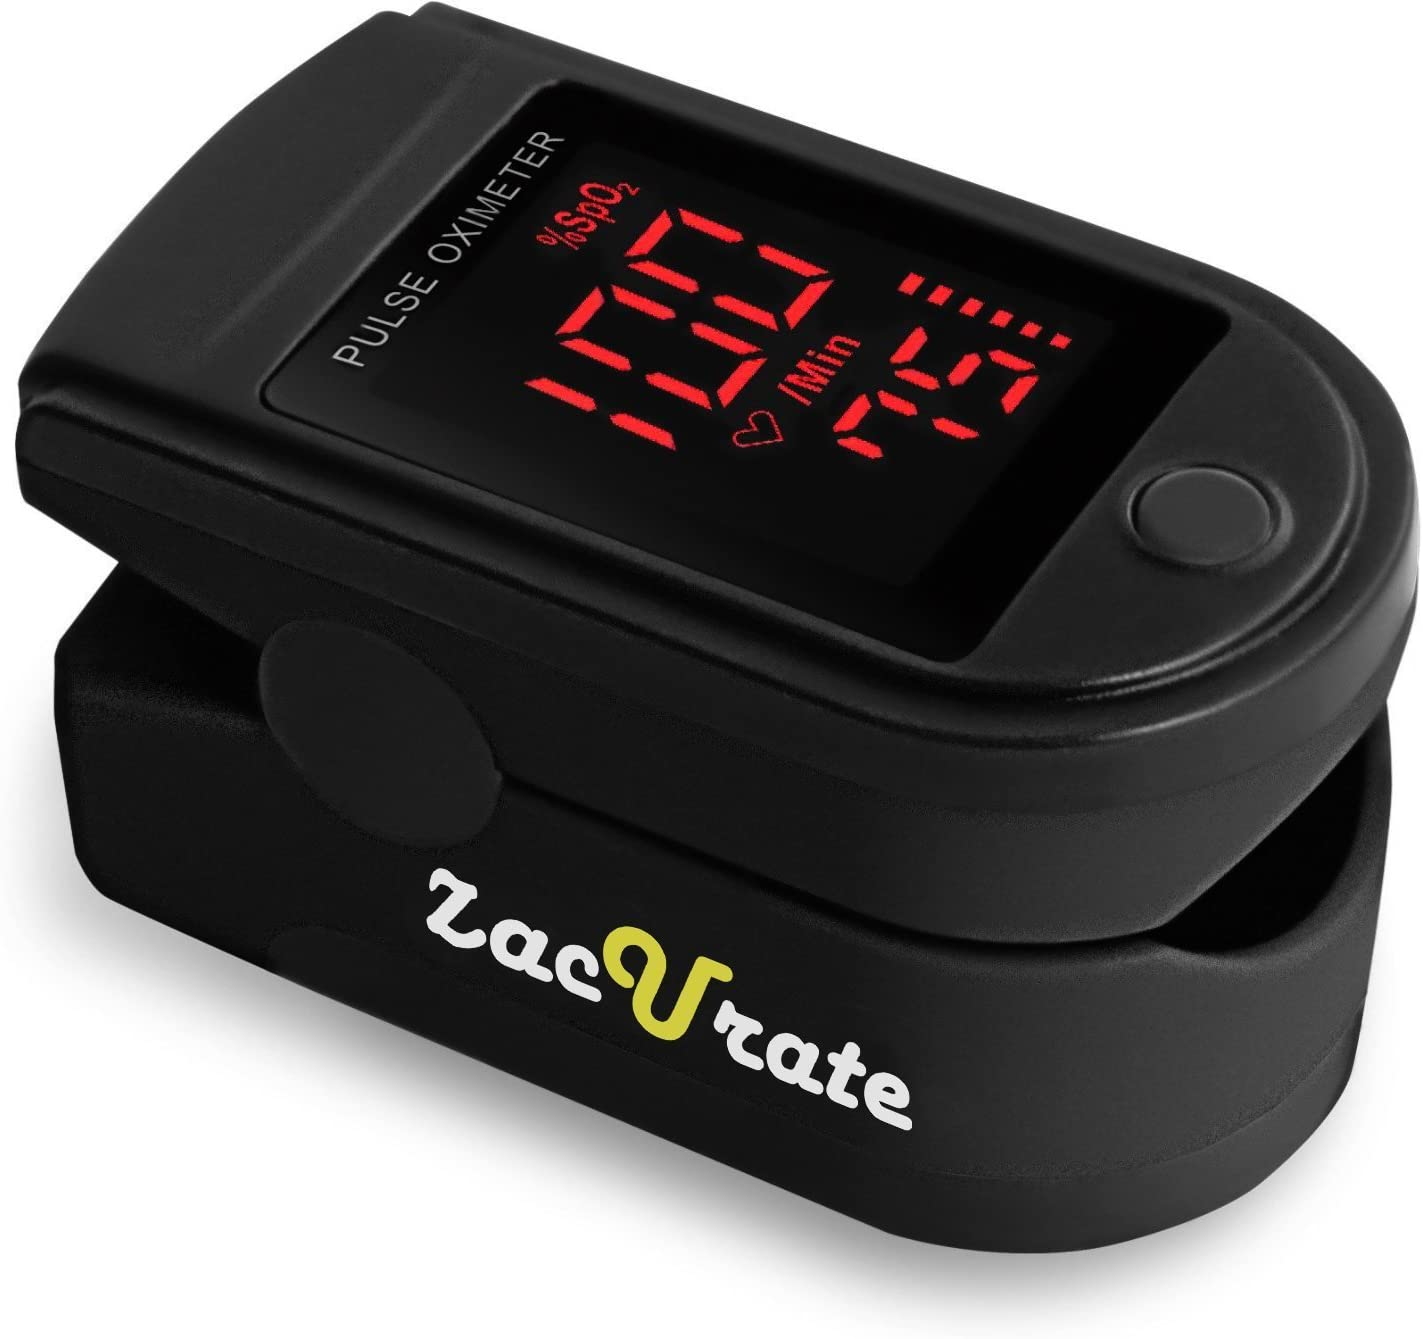 Zacurate Pulse Oximeter Blood Oxygen Saturation Monitor elderly gadget